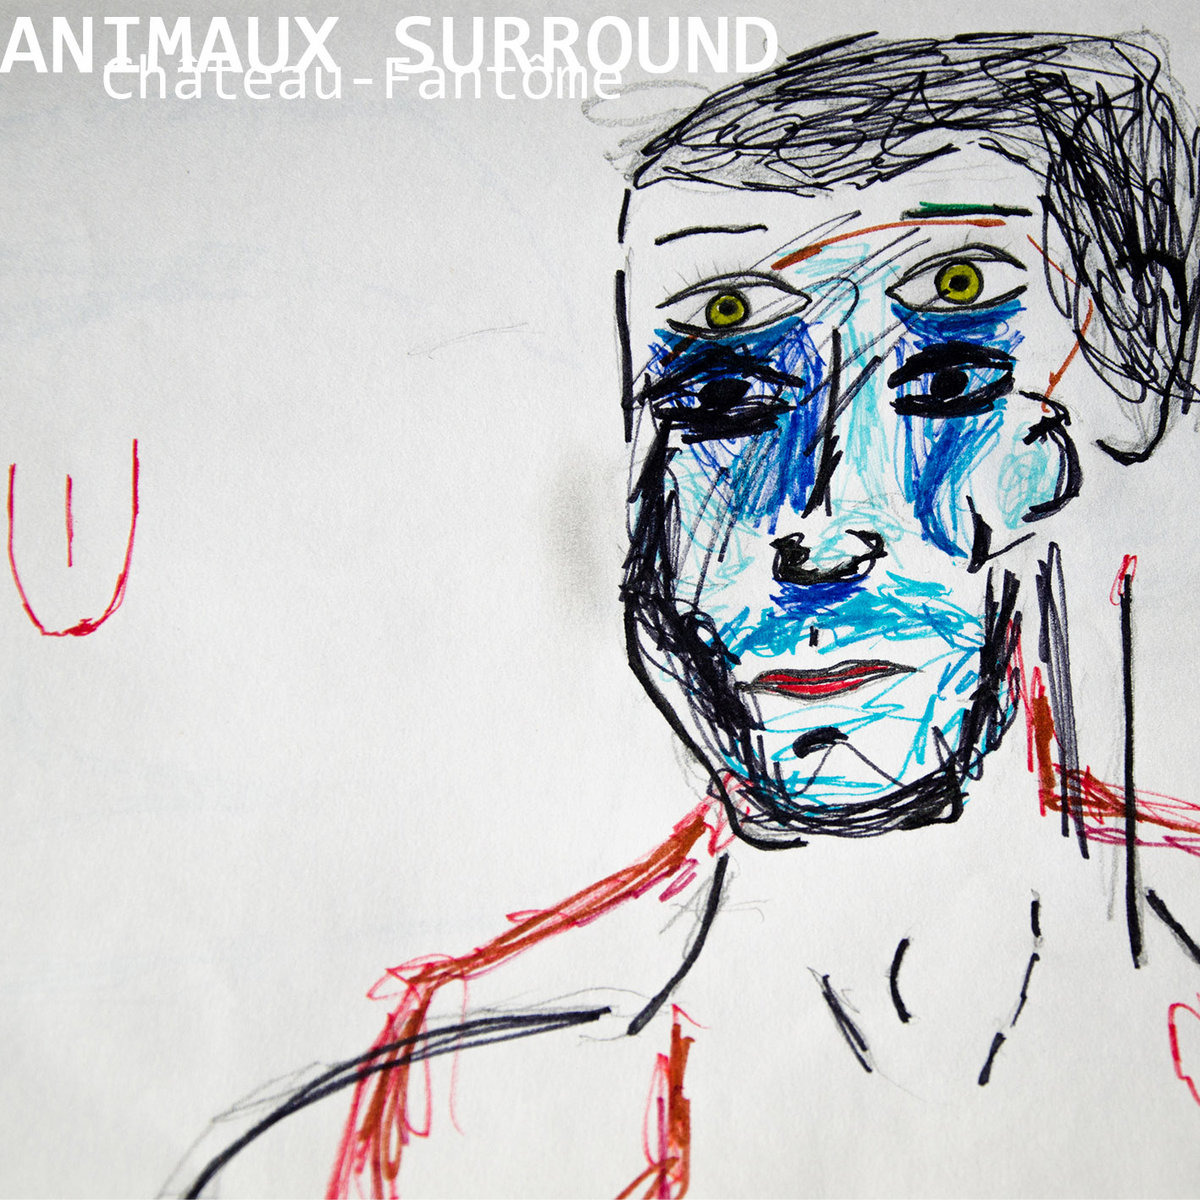 Animaux Surround artwork